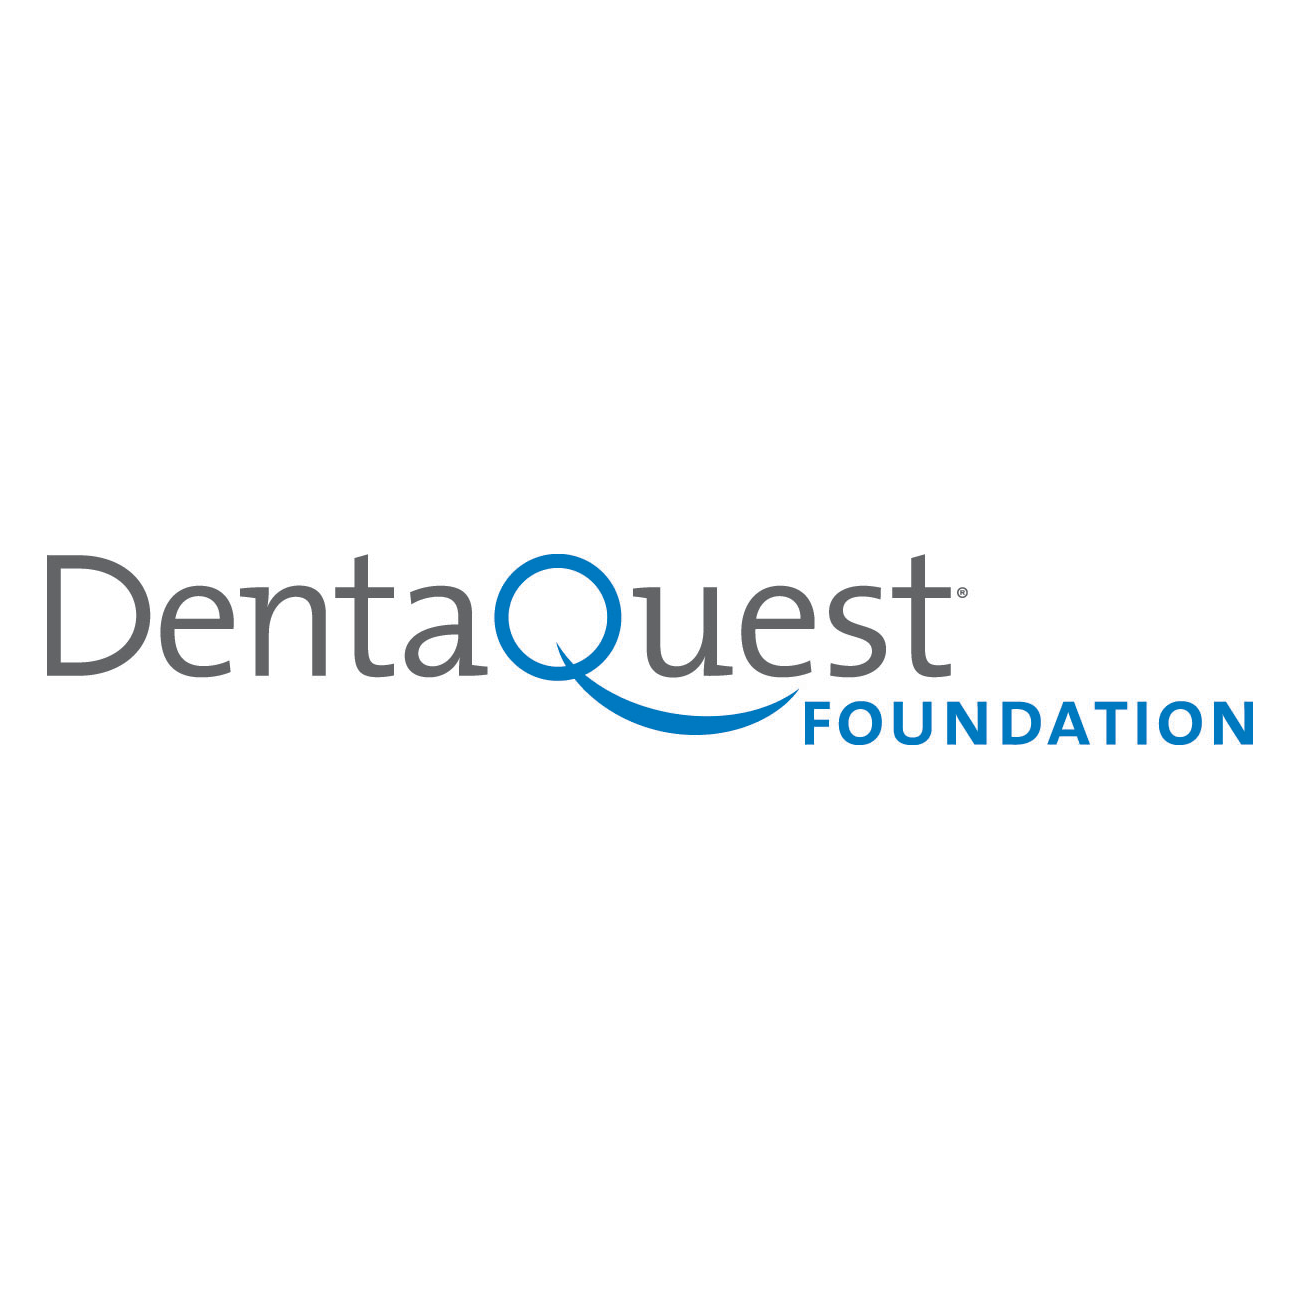 DentaQuest Foundation